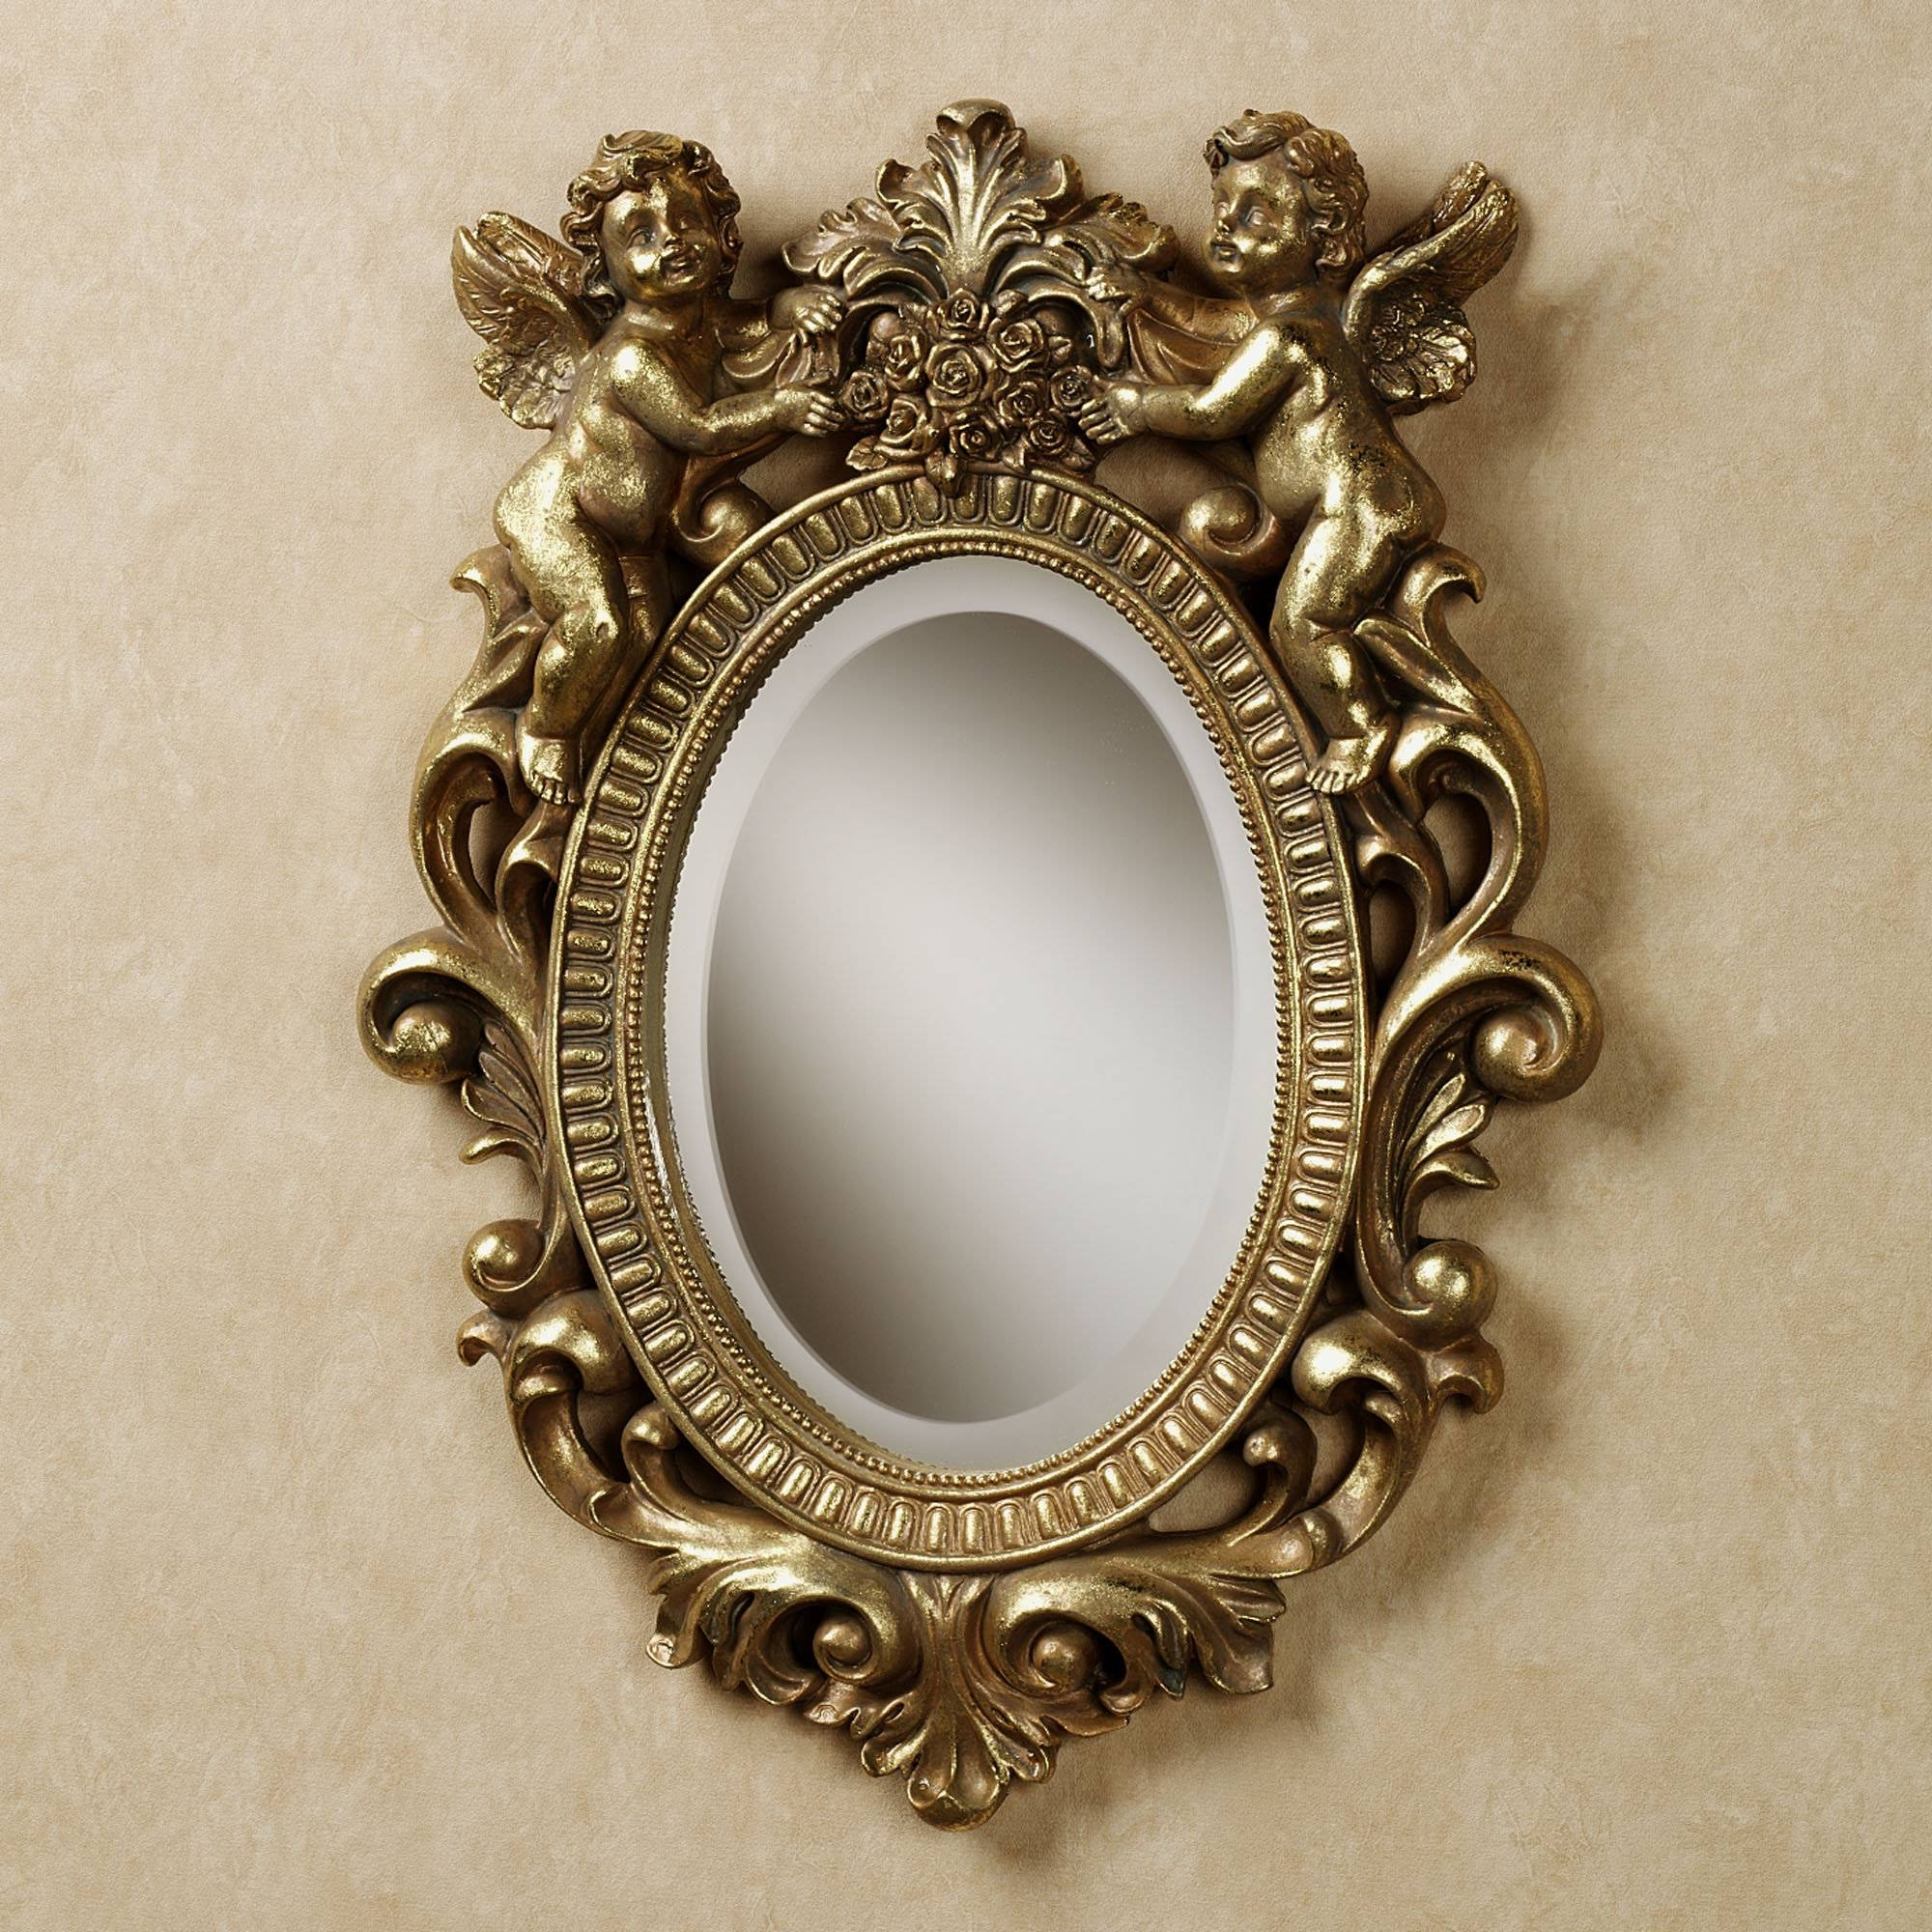 Home Decor: Antique Wall Mirror,antique Mirror,wall Mirrordecor ???? within Old Fashioned Mirrors (Image 16 of 25)